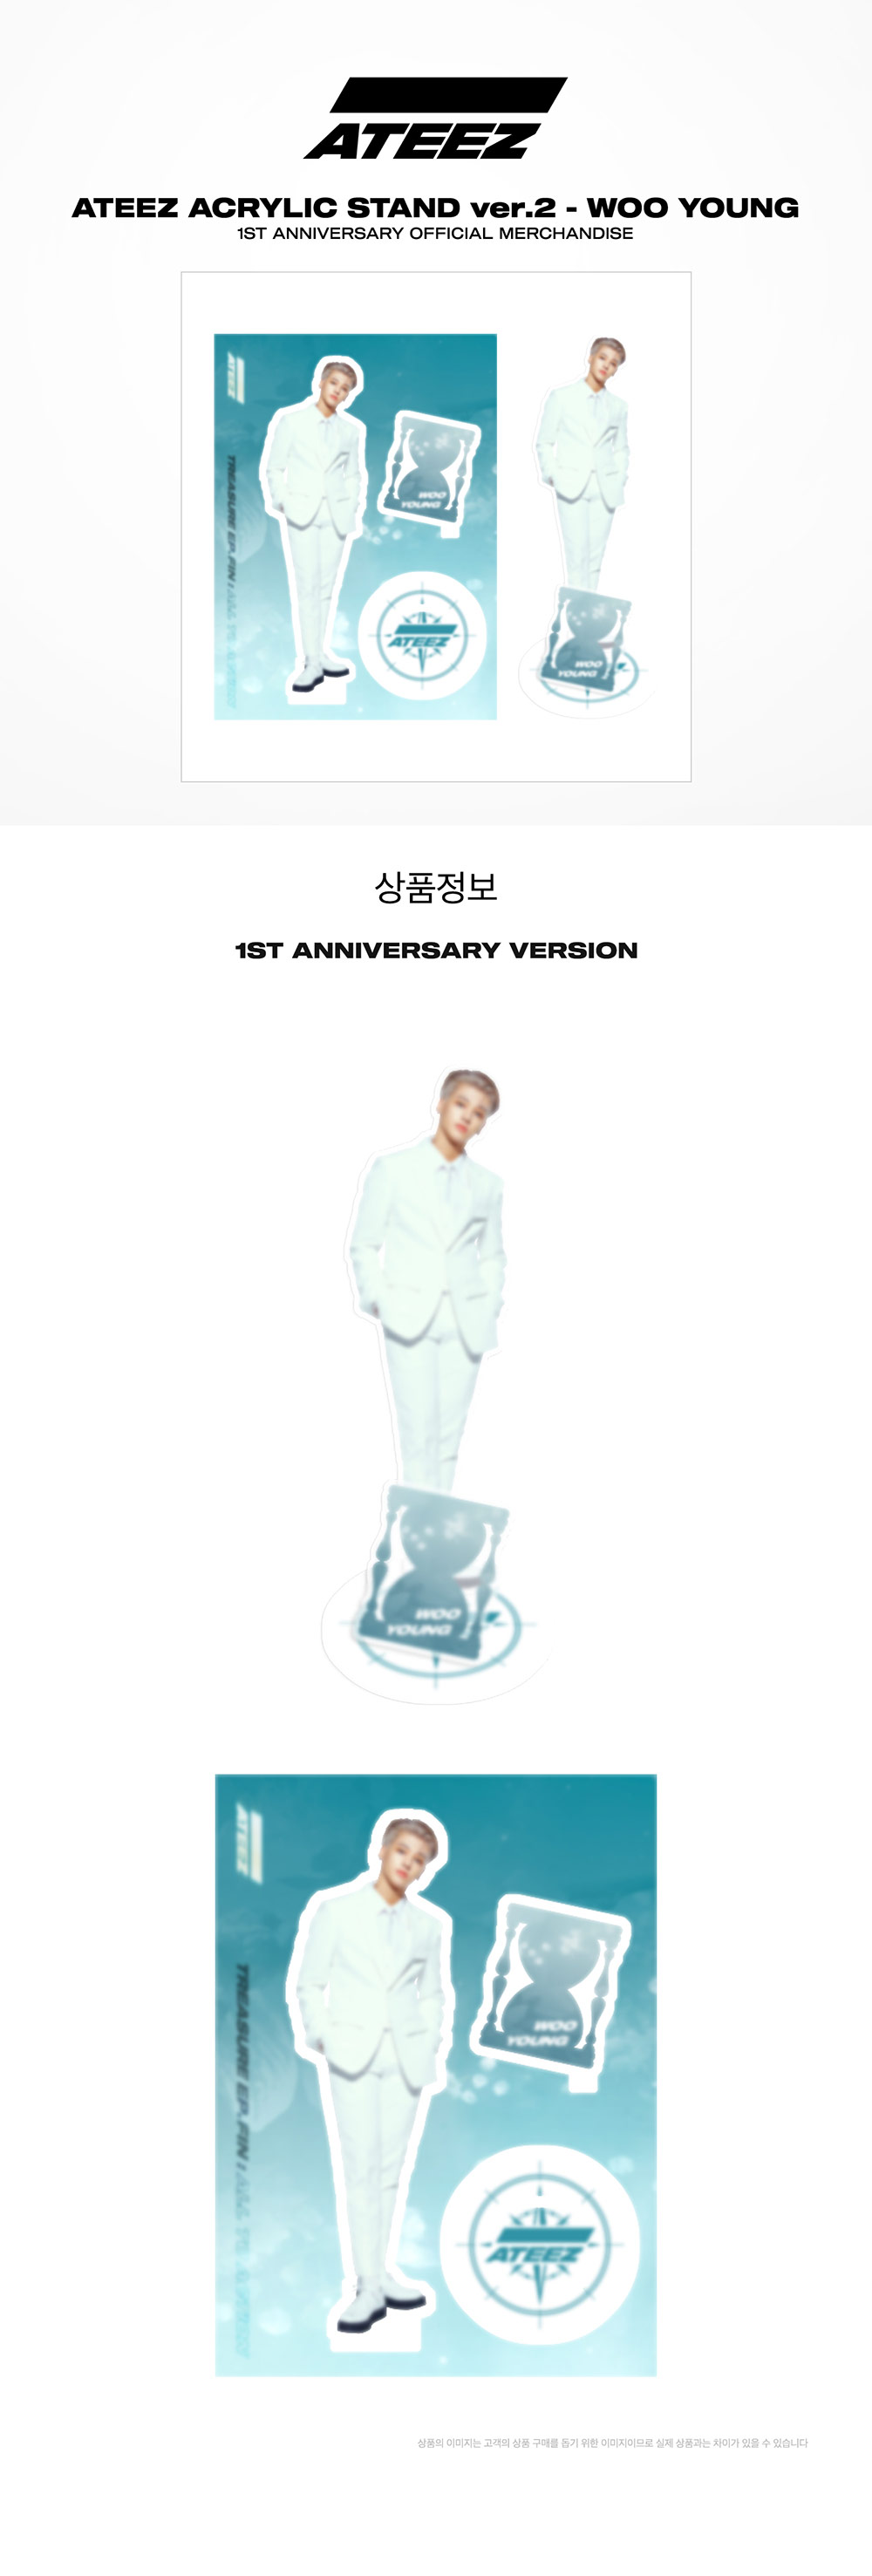 ateez_1st_anniversary_ACRYLIC_STAND2-1